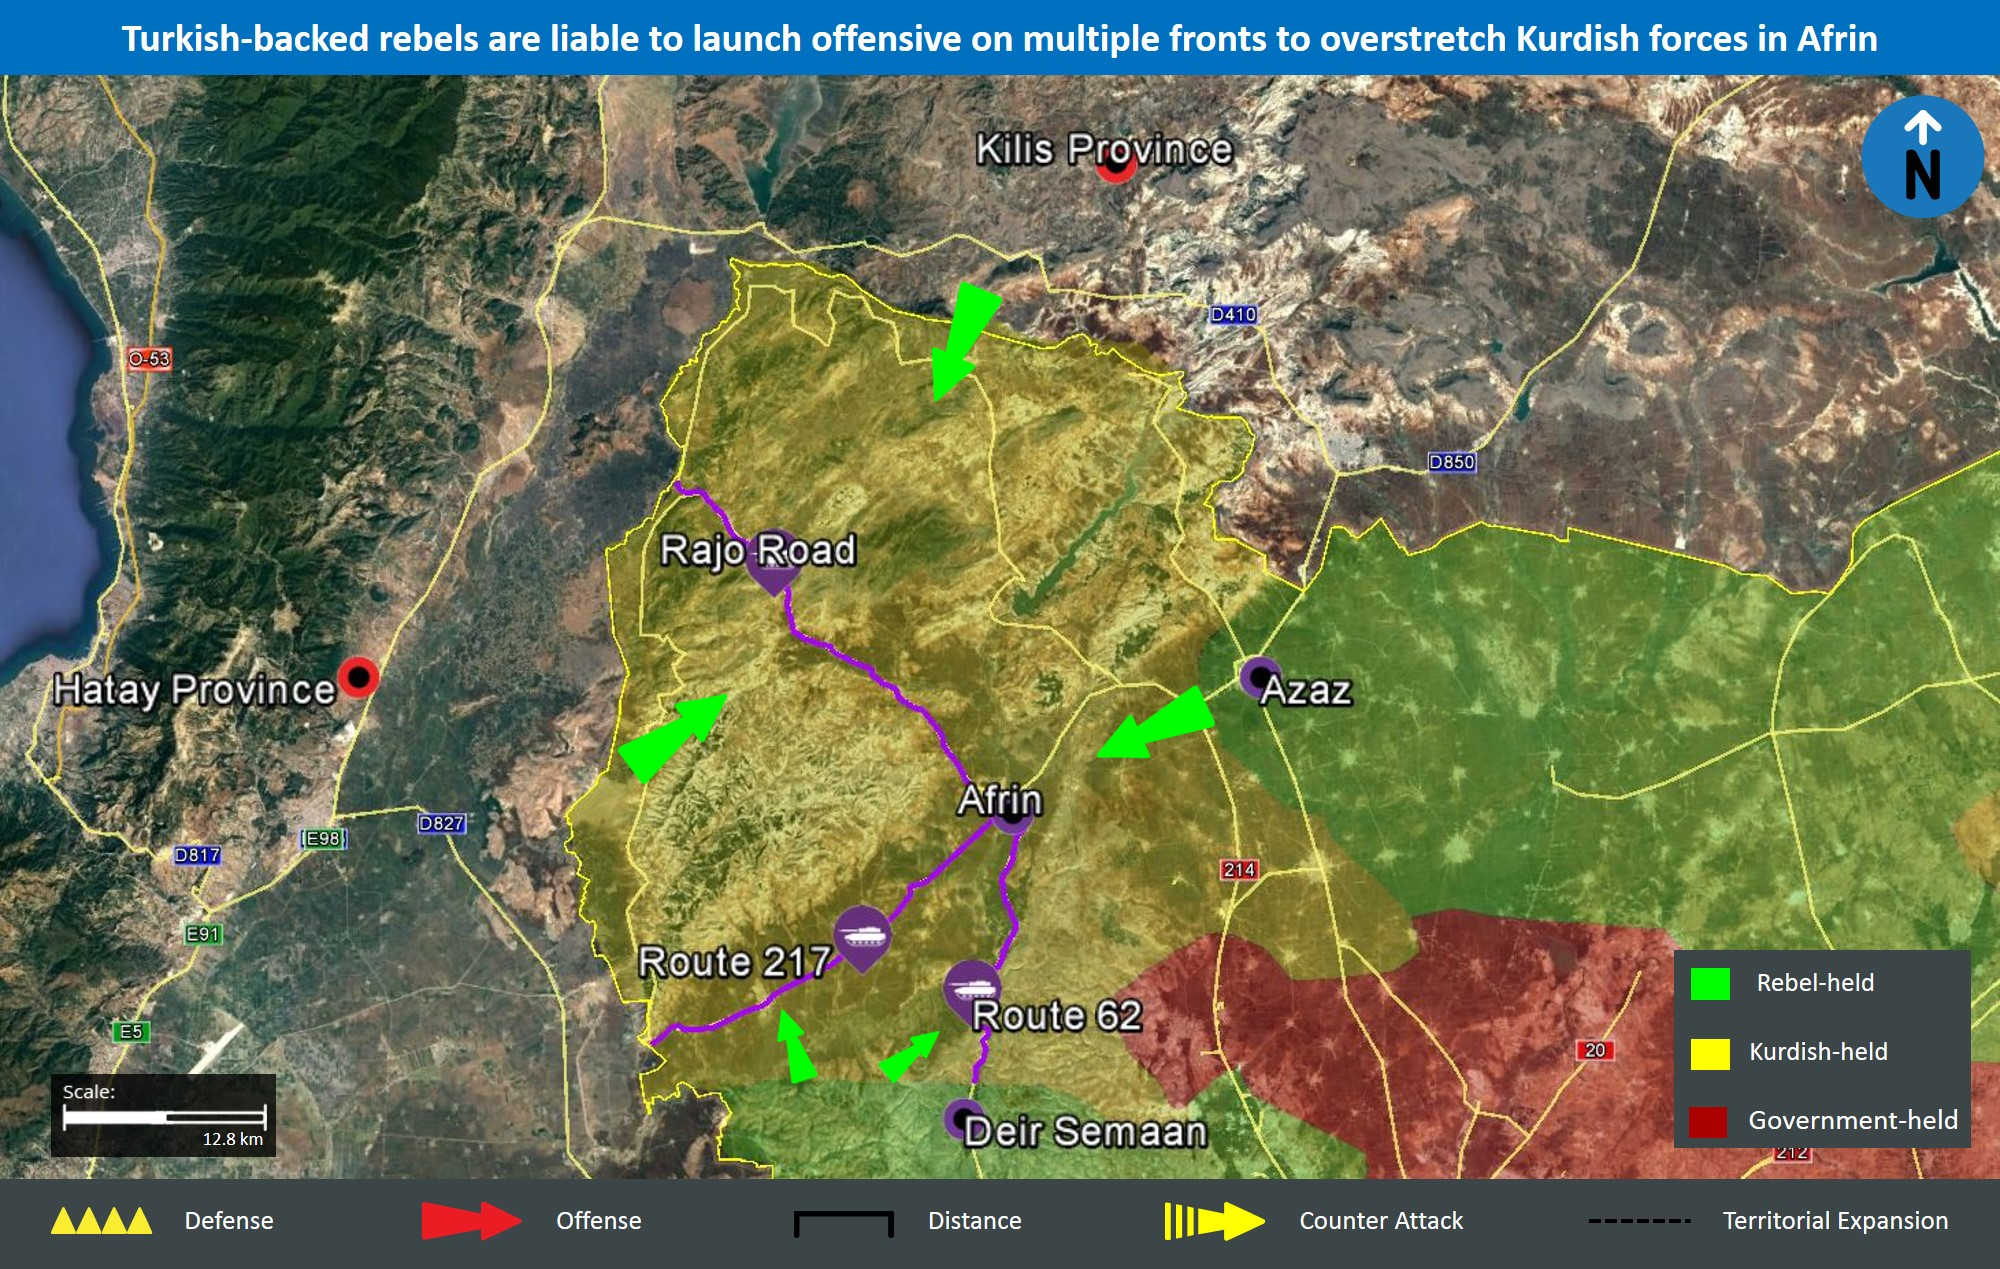 Turkey's military campaign aims to secure interests in northern Syria, mitigate Kurdish militant threat - Turkey & Syria Analysis | MAX Security